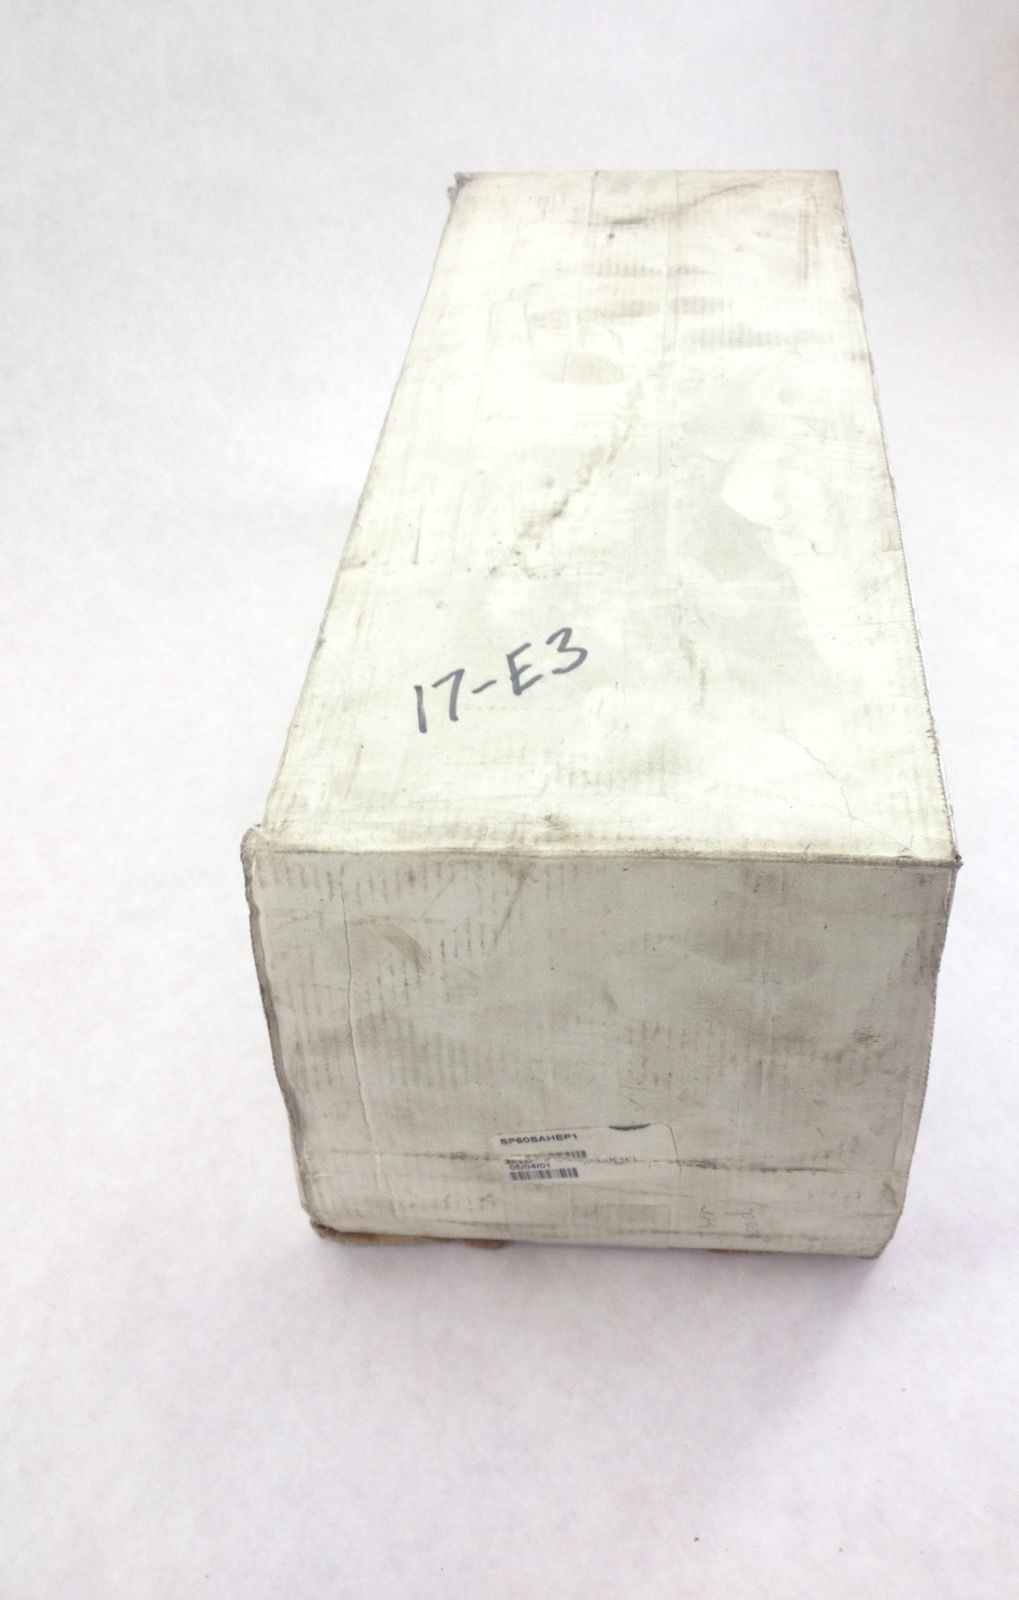 NEW! LHA SP60SAHEP1 IN-LINE FILTER ASSY 10 MICRON NOMINAL 1-1/4 FAST SHIP!(TOL) 2